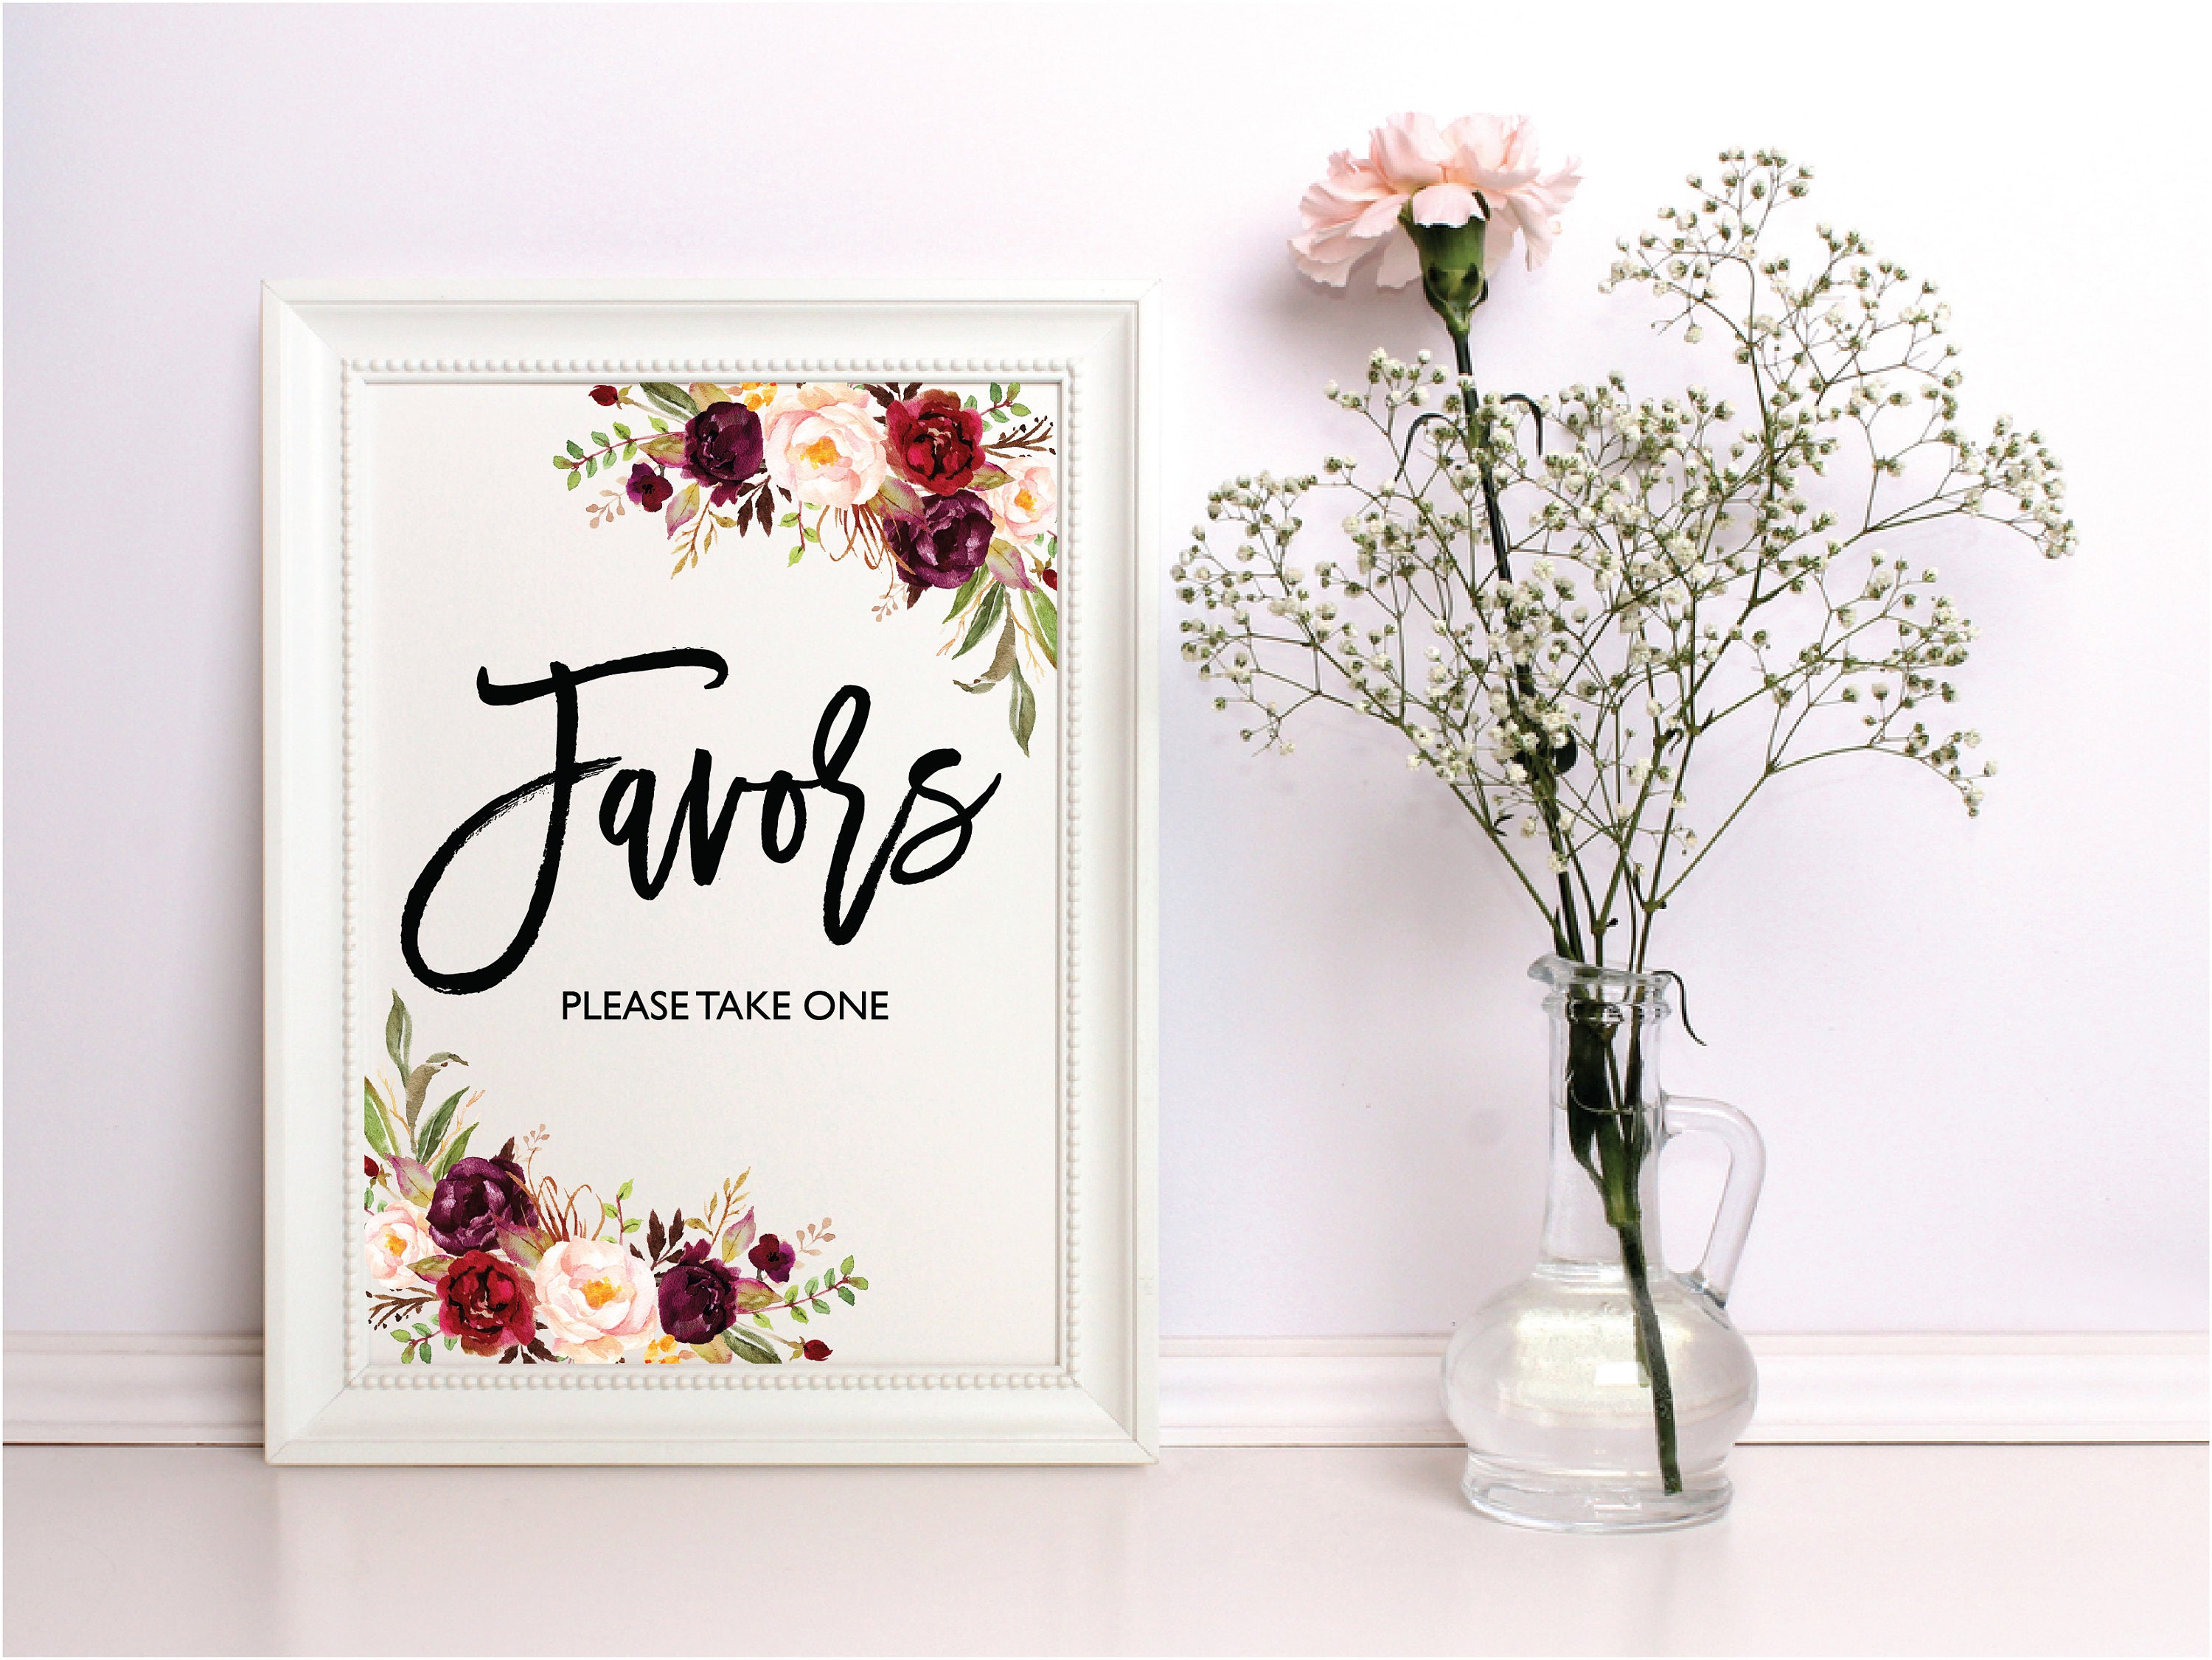 Wedding Favors Sign, Wedding Signs Set, Favors Please Take One Sign ...